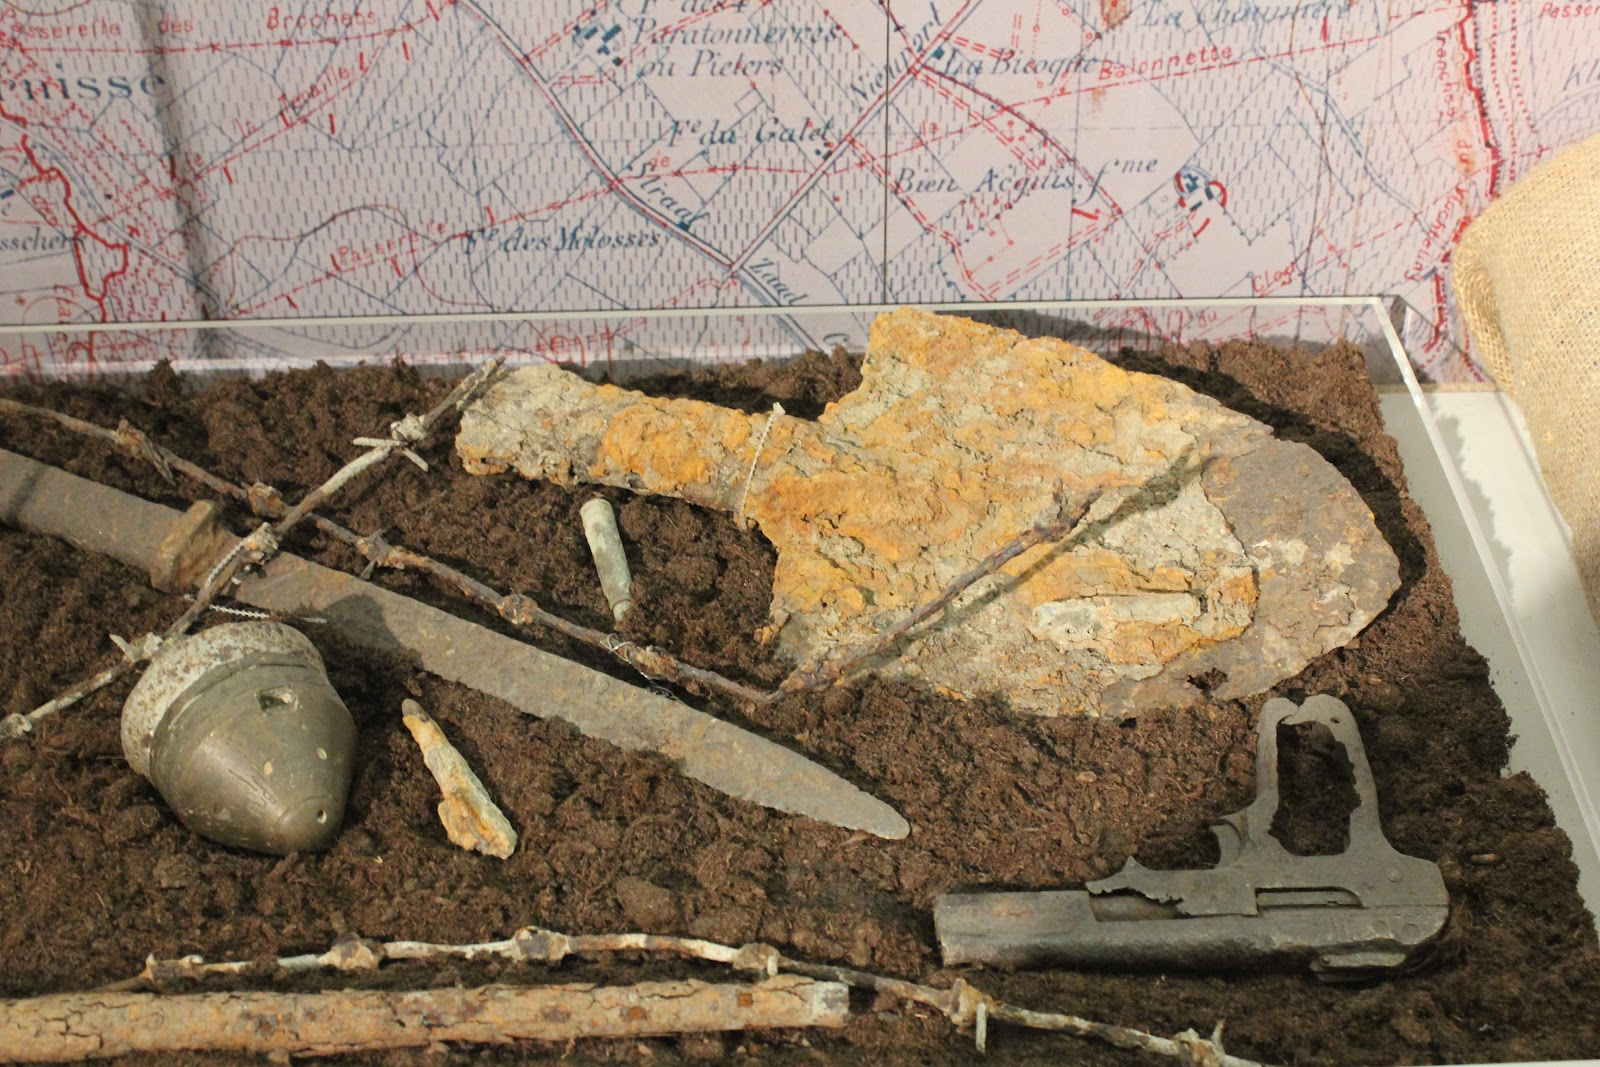 The World Of Nickolndia Wwi Trenches Trench Diagram Pistol And Excavating Shovel